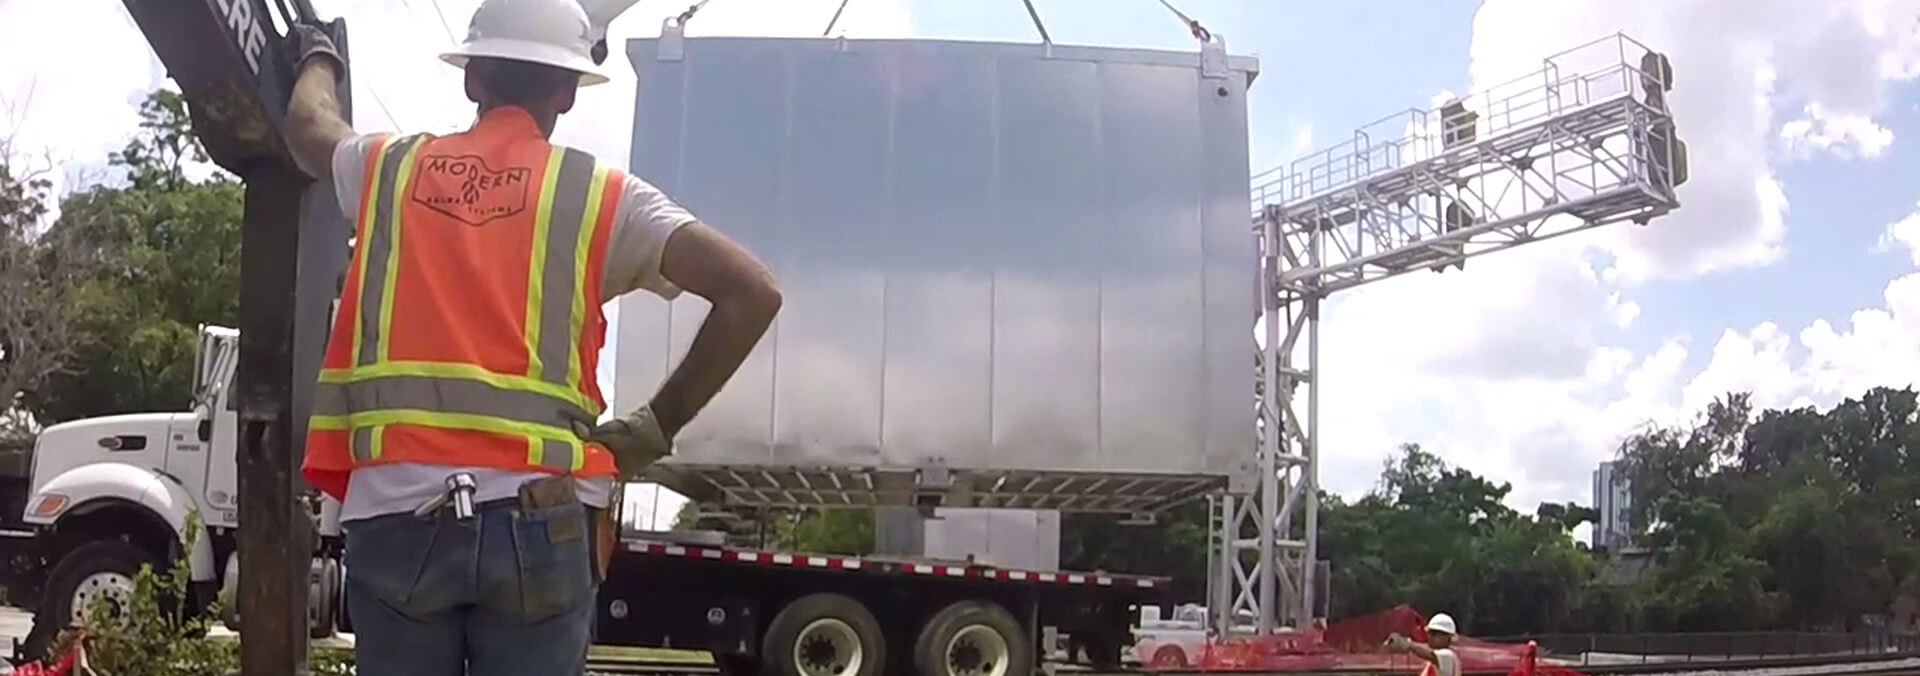 A construction worker unloading steel structure from semitruck.